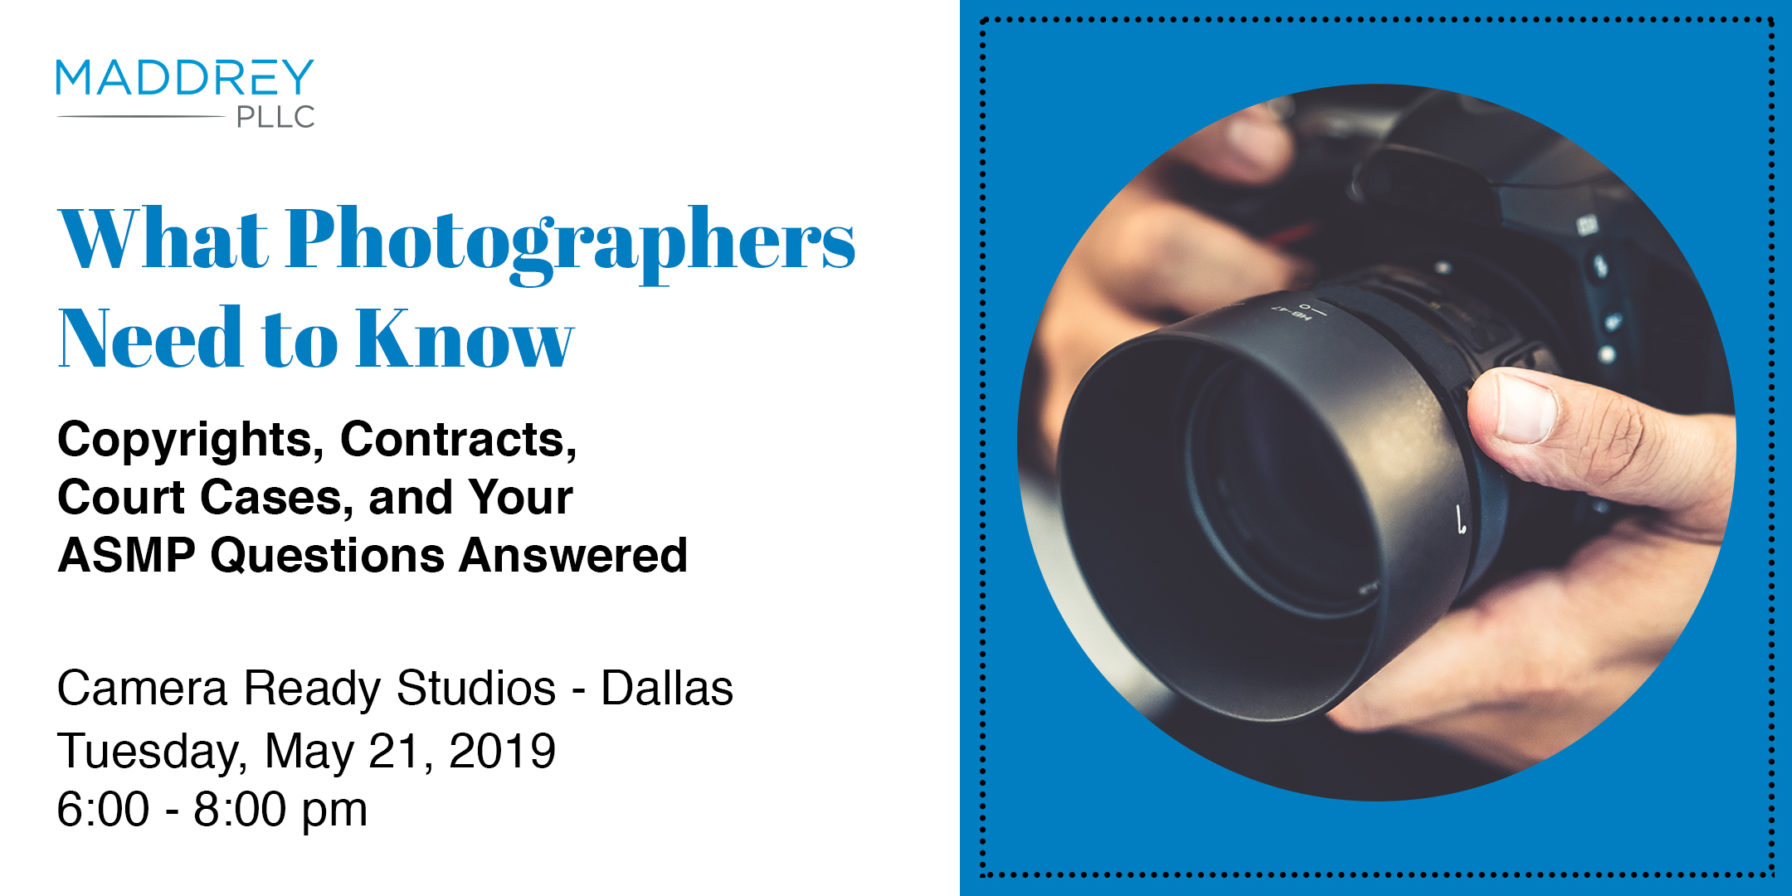 What Photographers Need to Know about Copyright - by Tom Maddrey PLLC